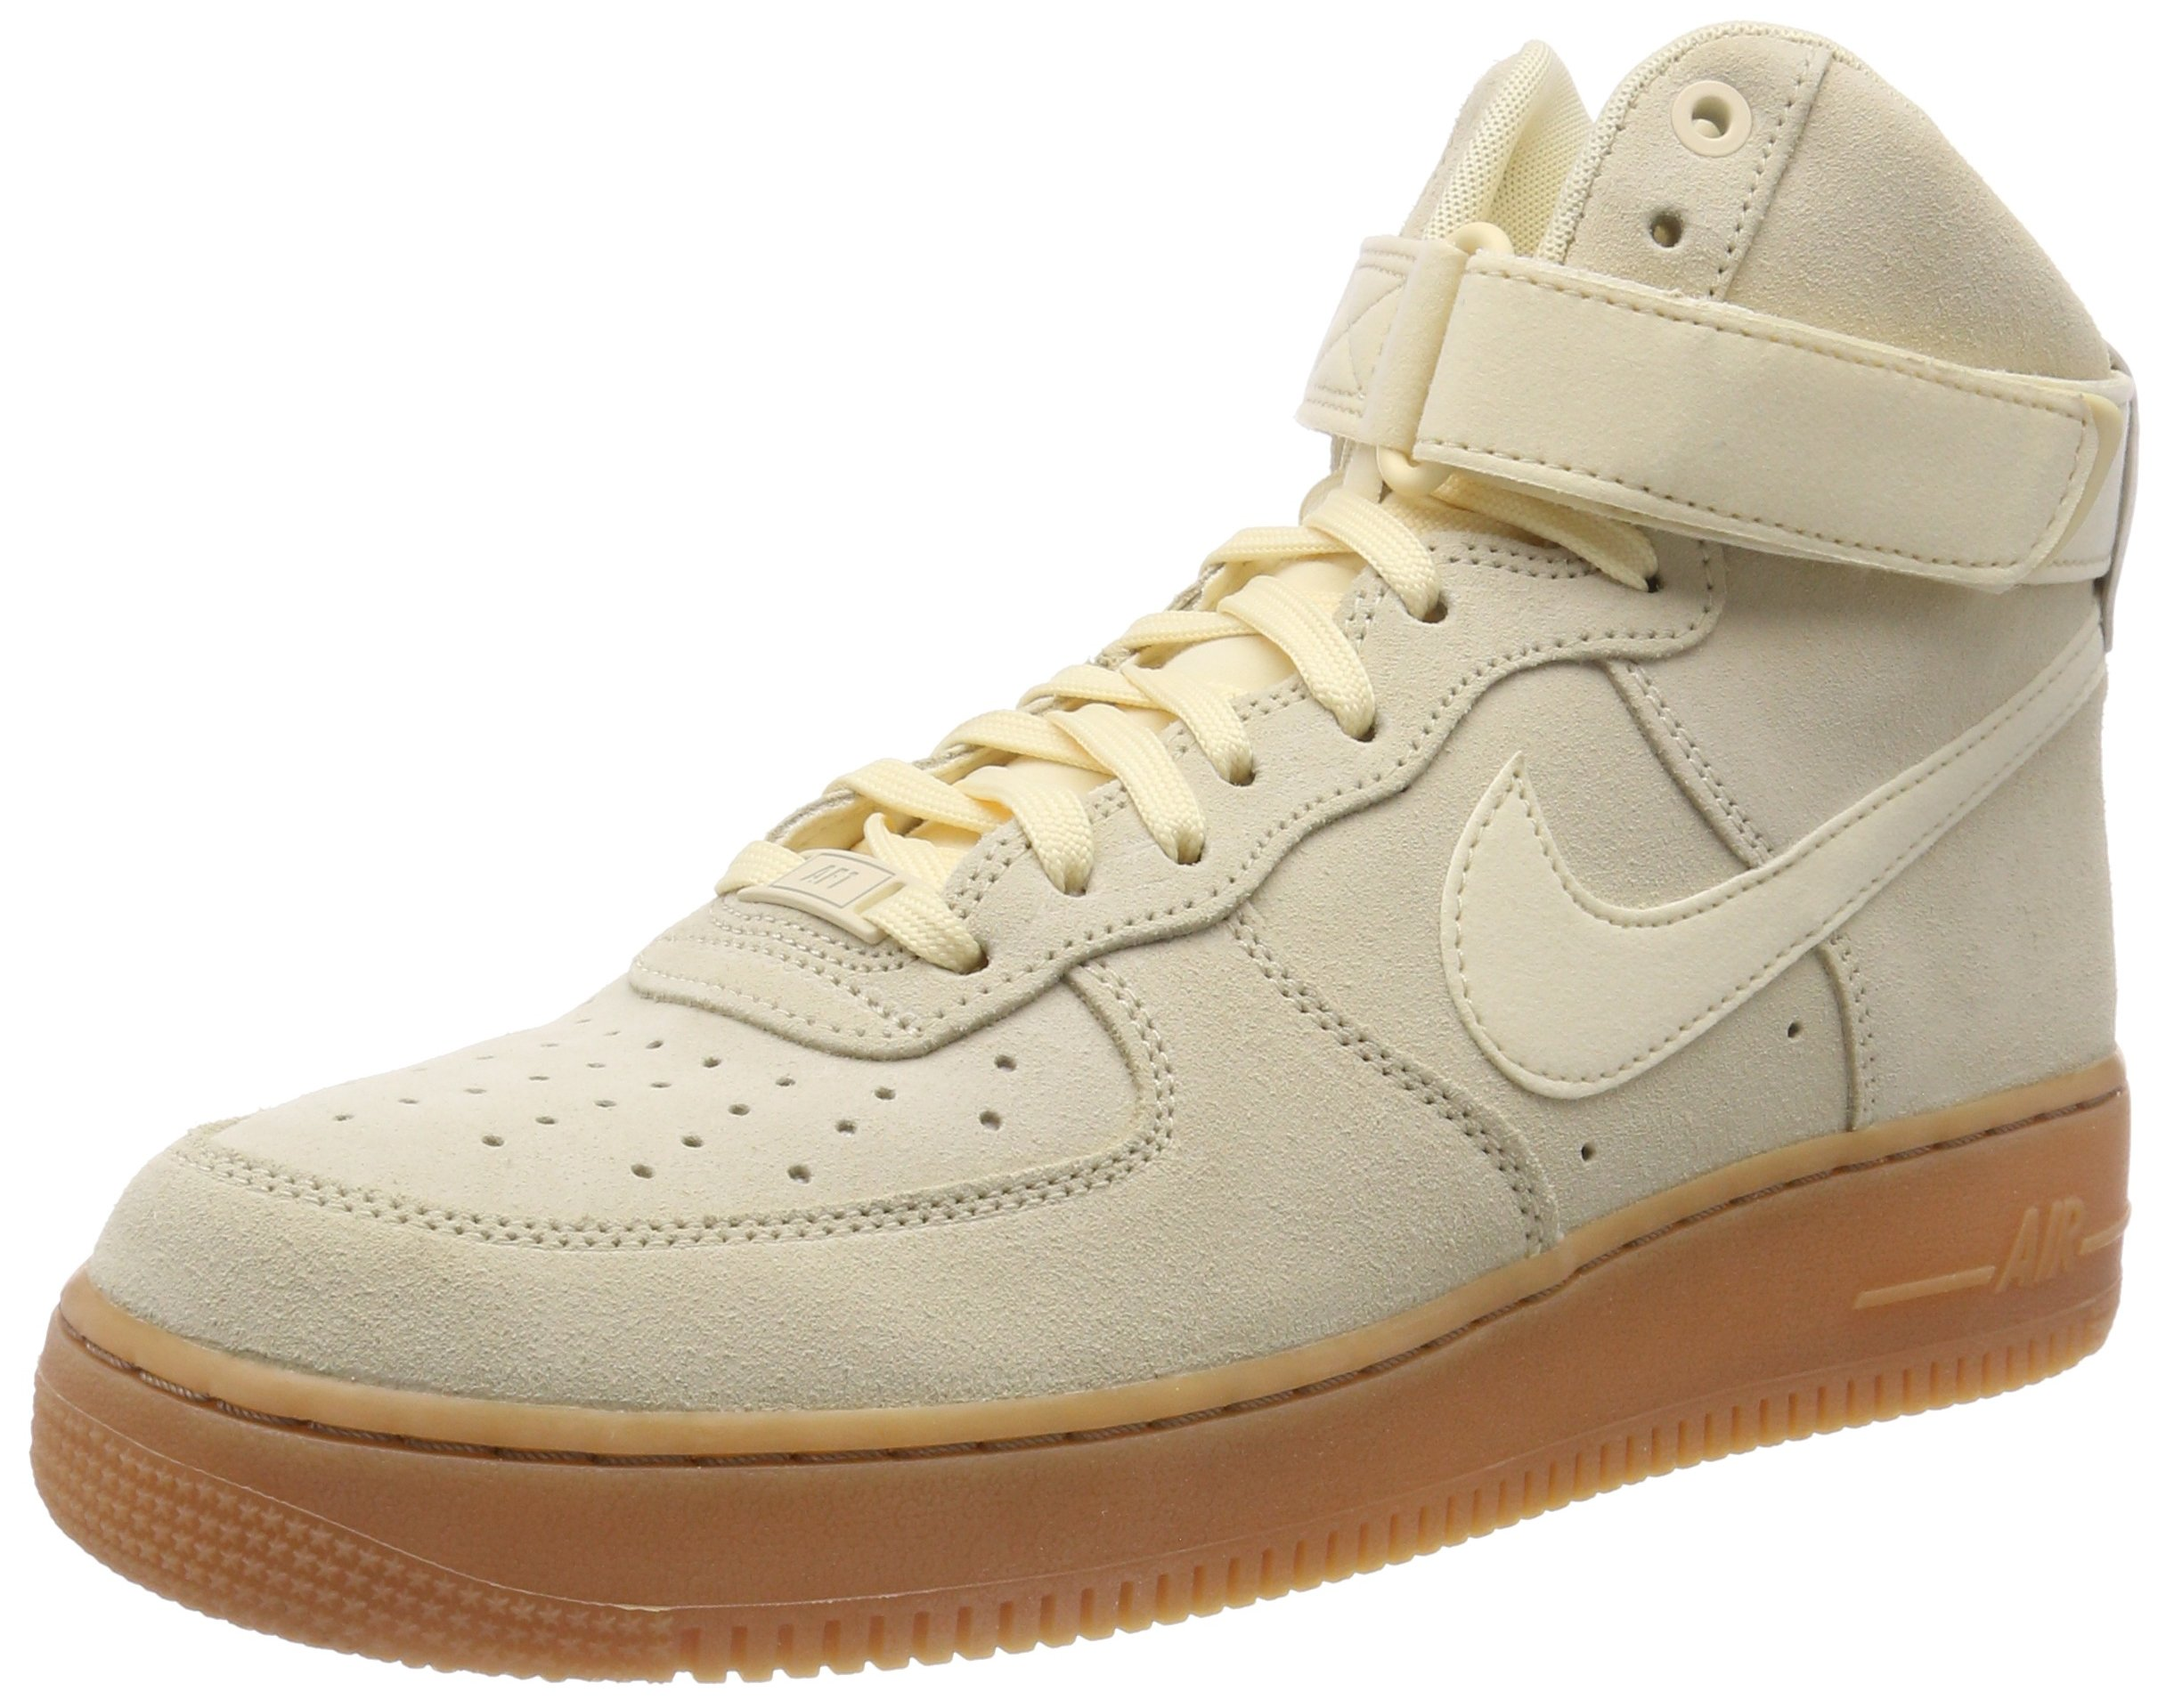 Nike Air Force 1 High '07 LV8 Suede Men's Shoes MuslinGum Medium Brown aa1118 100 (9.5 D(M) US)